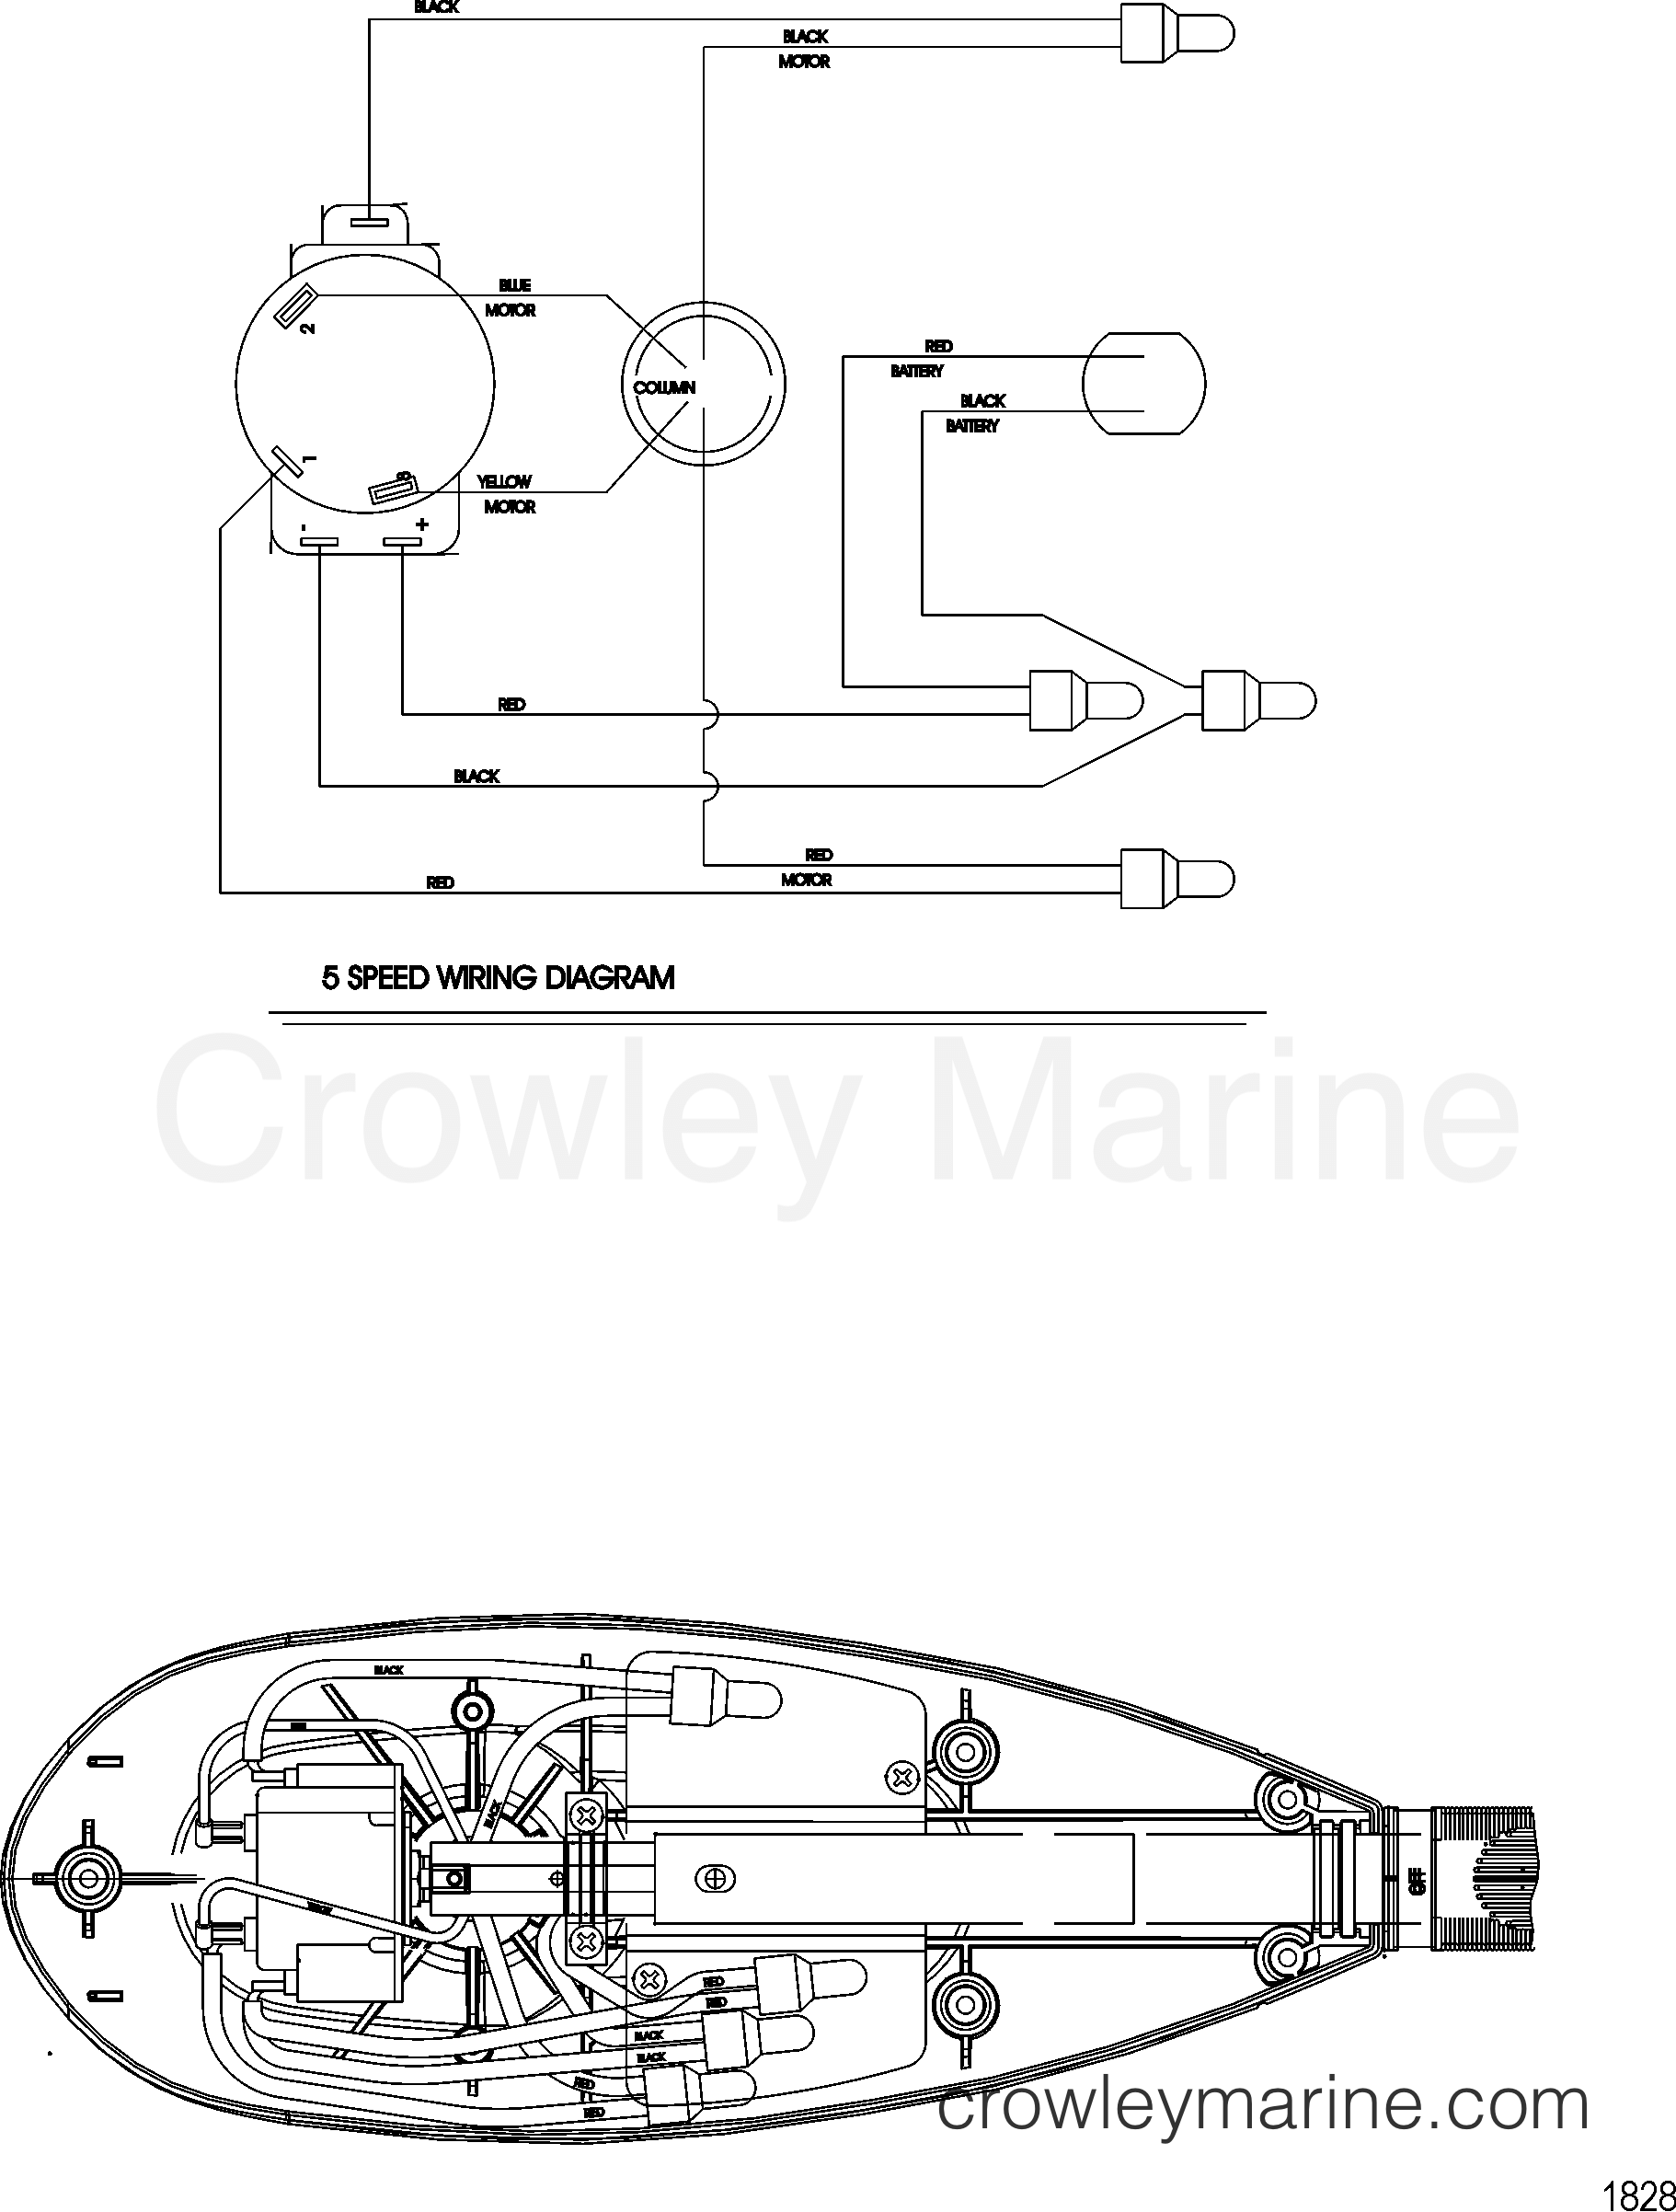 2005 MotorGuide 12V [MOTORGUIDE] - 921310040 WIRE DIAGRAM(MODEL FW54HP) (WITHOUT QUICK CONNECT) section